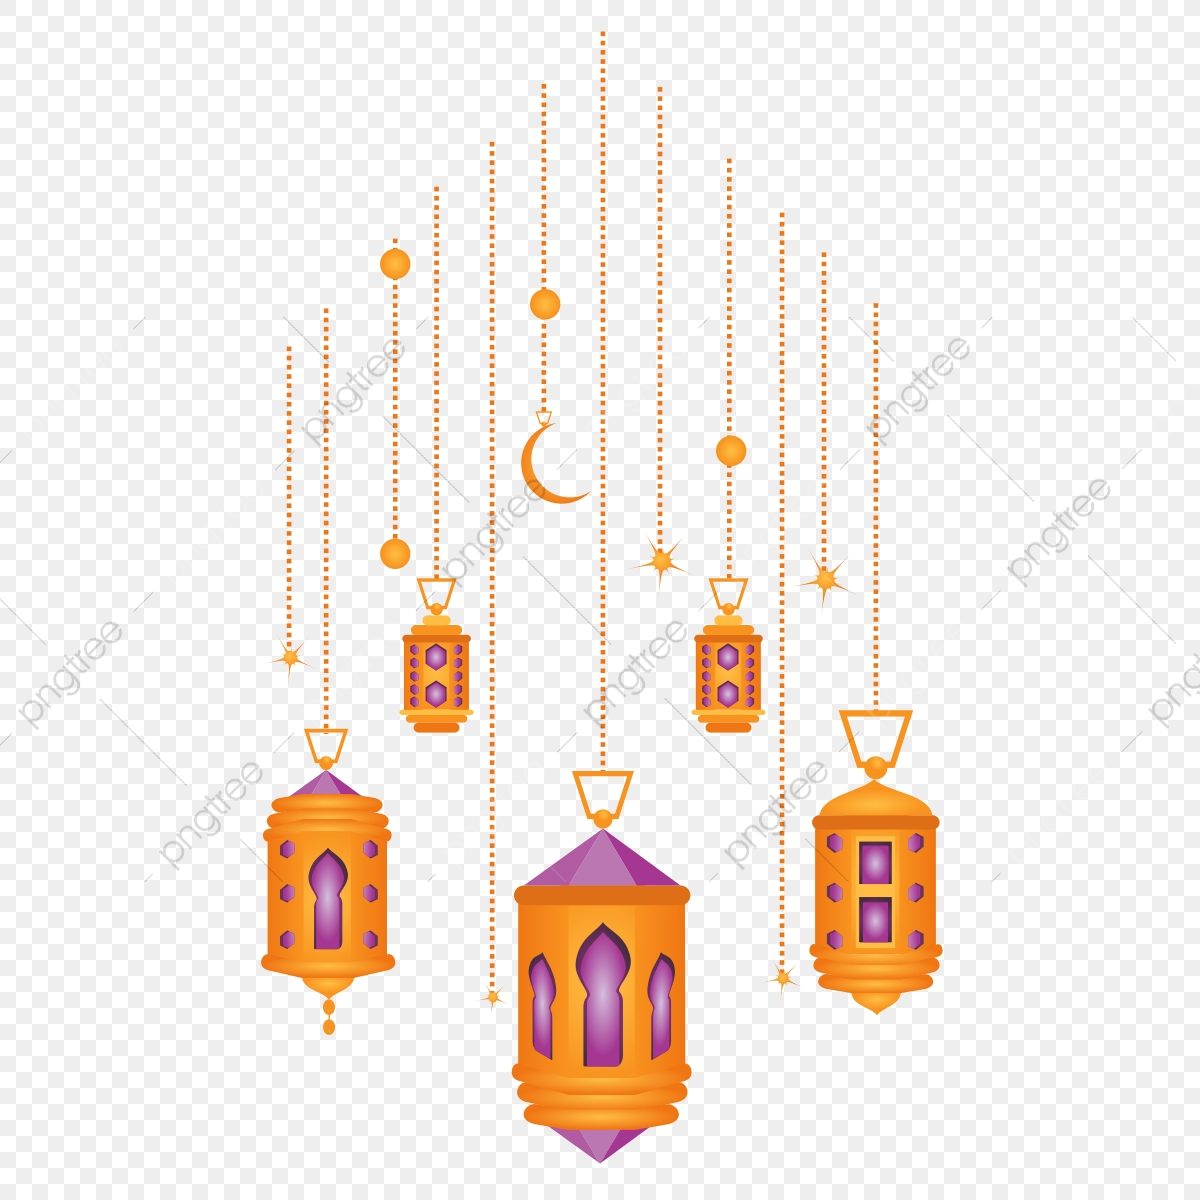 lamp png images vector and psd files free download on pngtree https pngtree com freepng islamic ramdan lantern lamp eid al adha 3558659 html